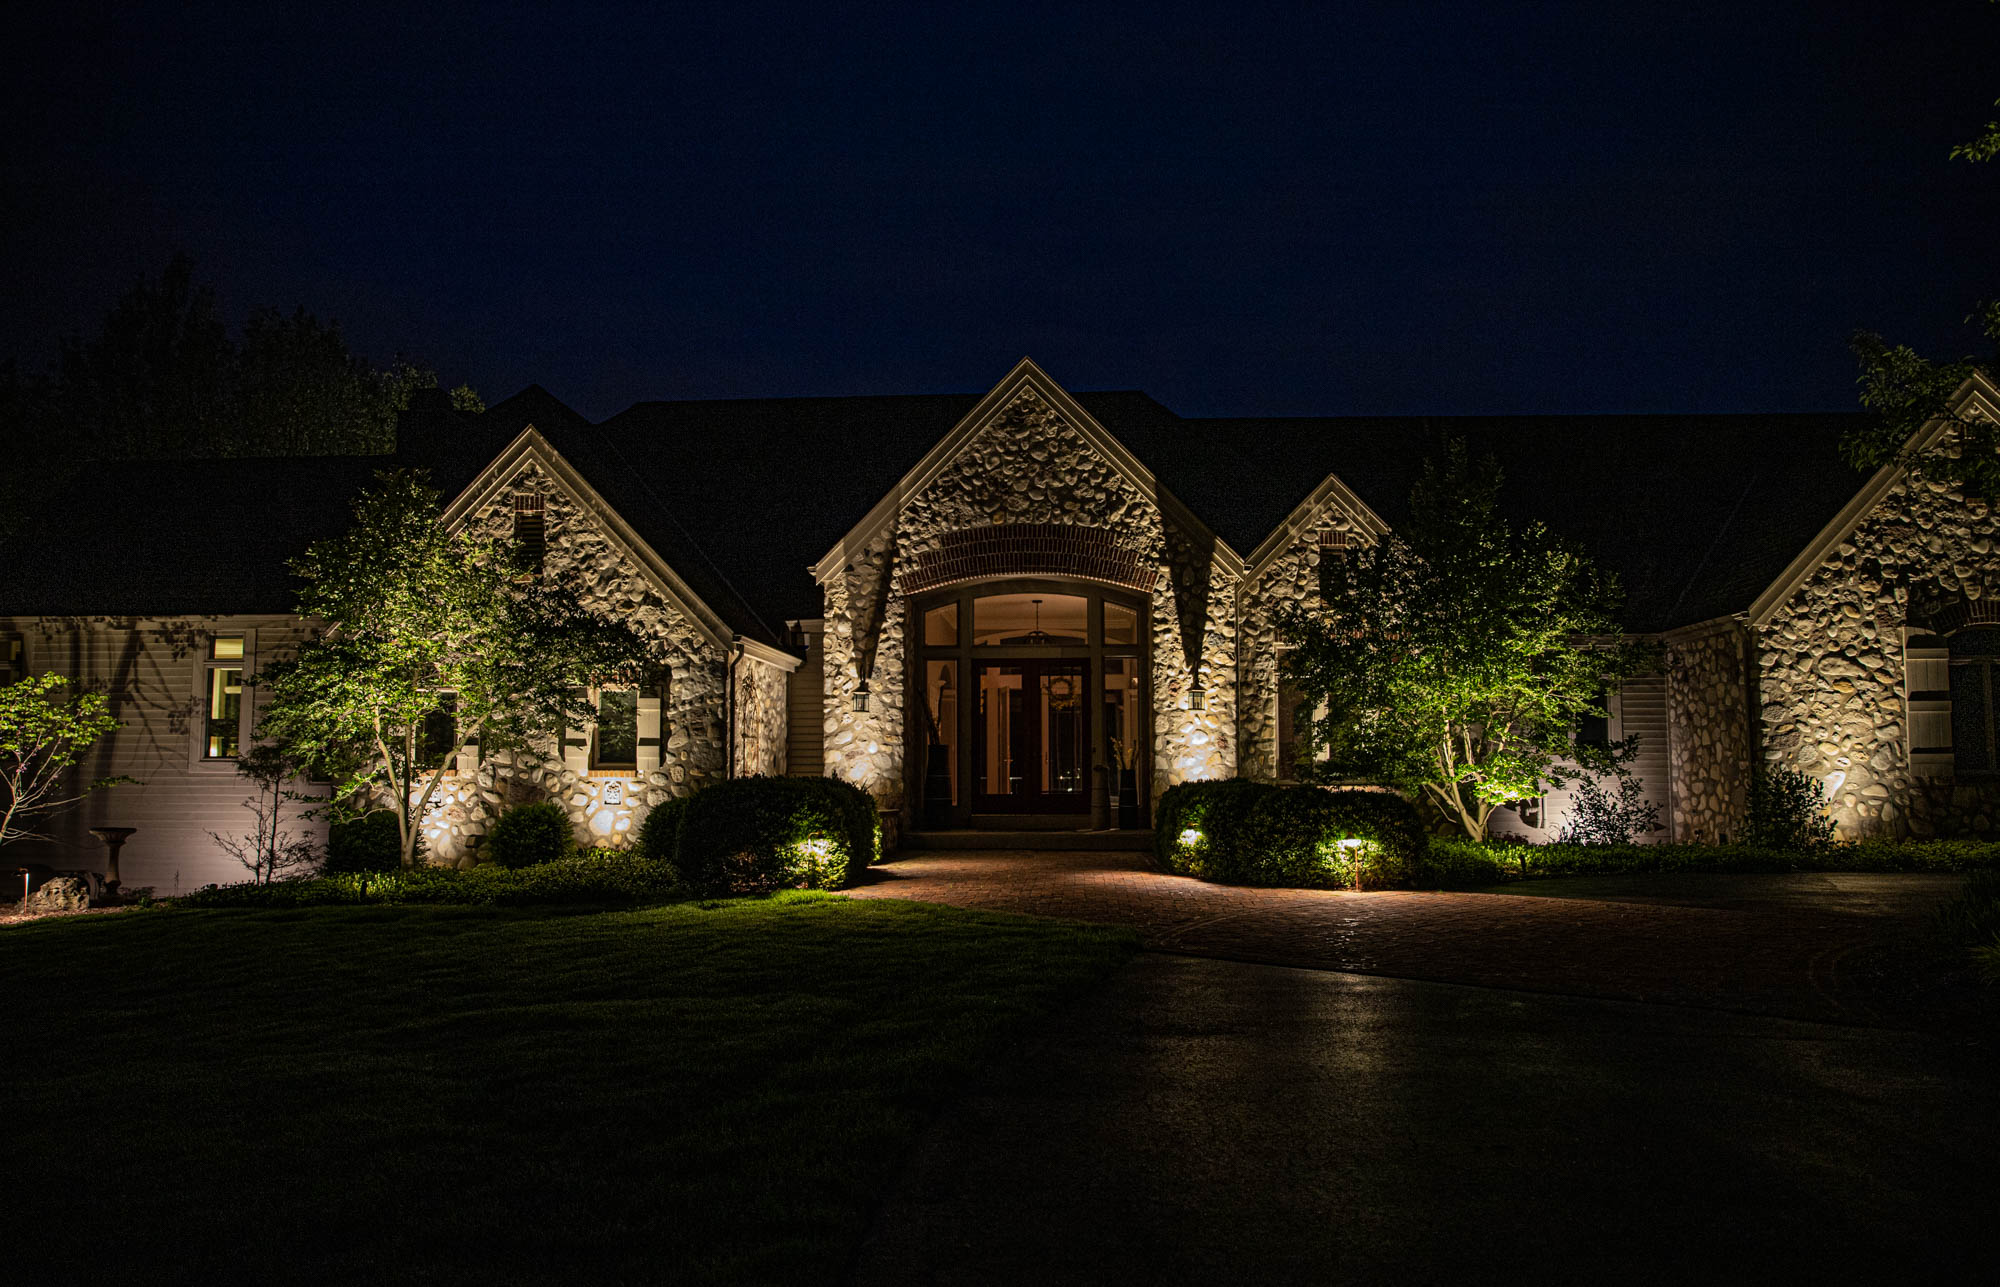 delafield landscape outdoor lighting night owl home security residential stone entry light design